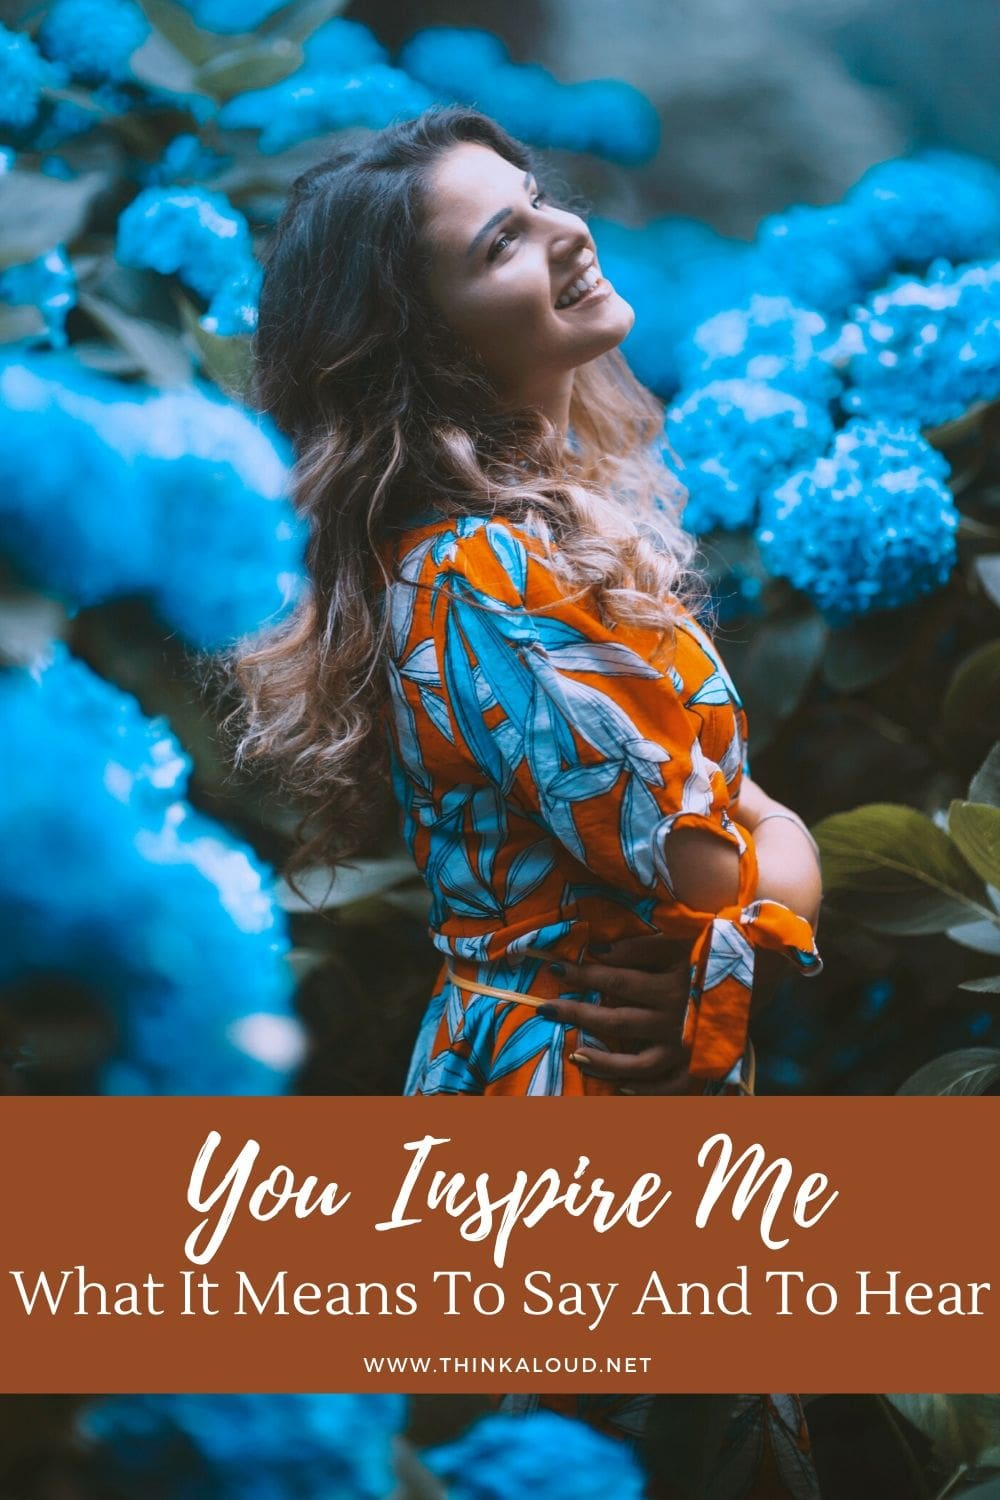 You Inspire Me - What It Means To Say And To Hear